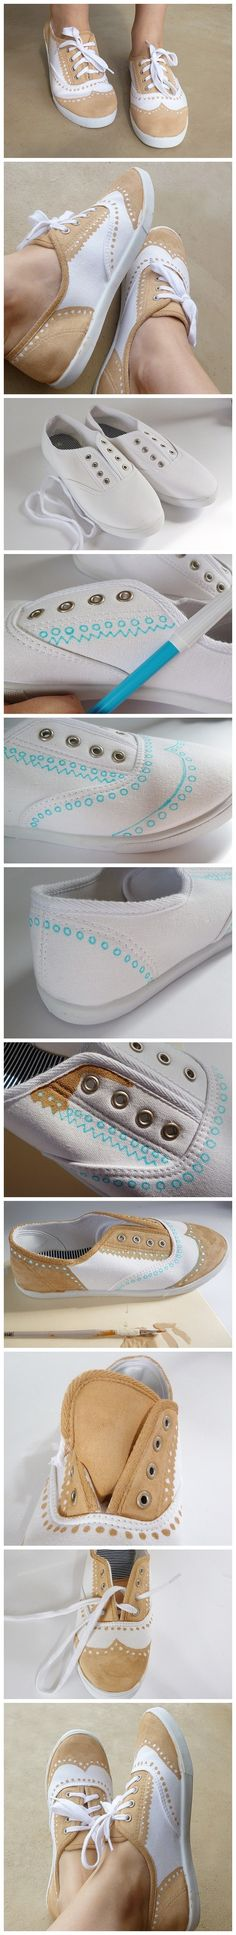 cutify basic sneaks.  I'd use tiny buttons, beads, snaps, or something in place of the dots.  Or just dot the colored paint with a paint pen/puffy paint.